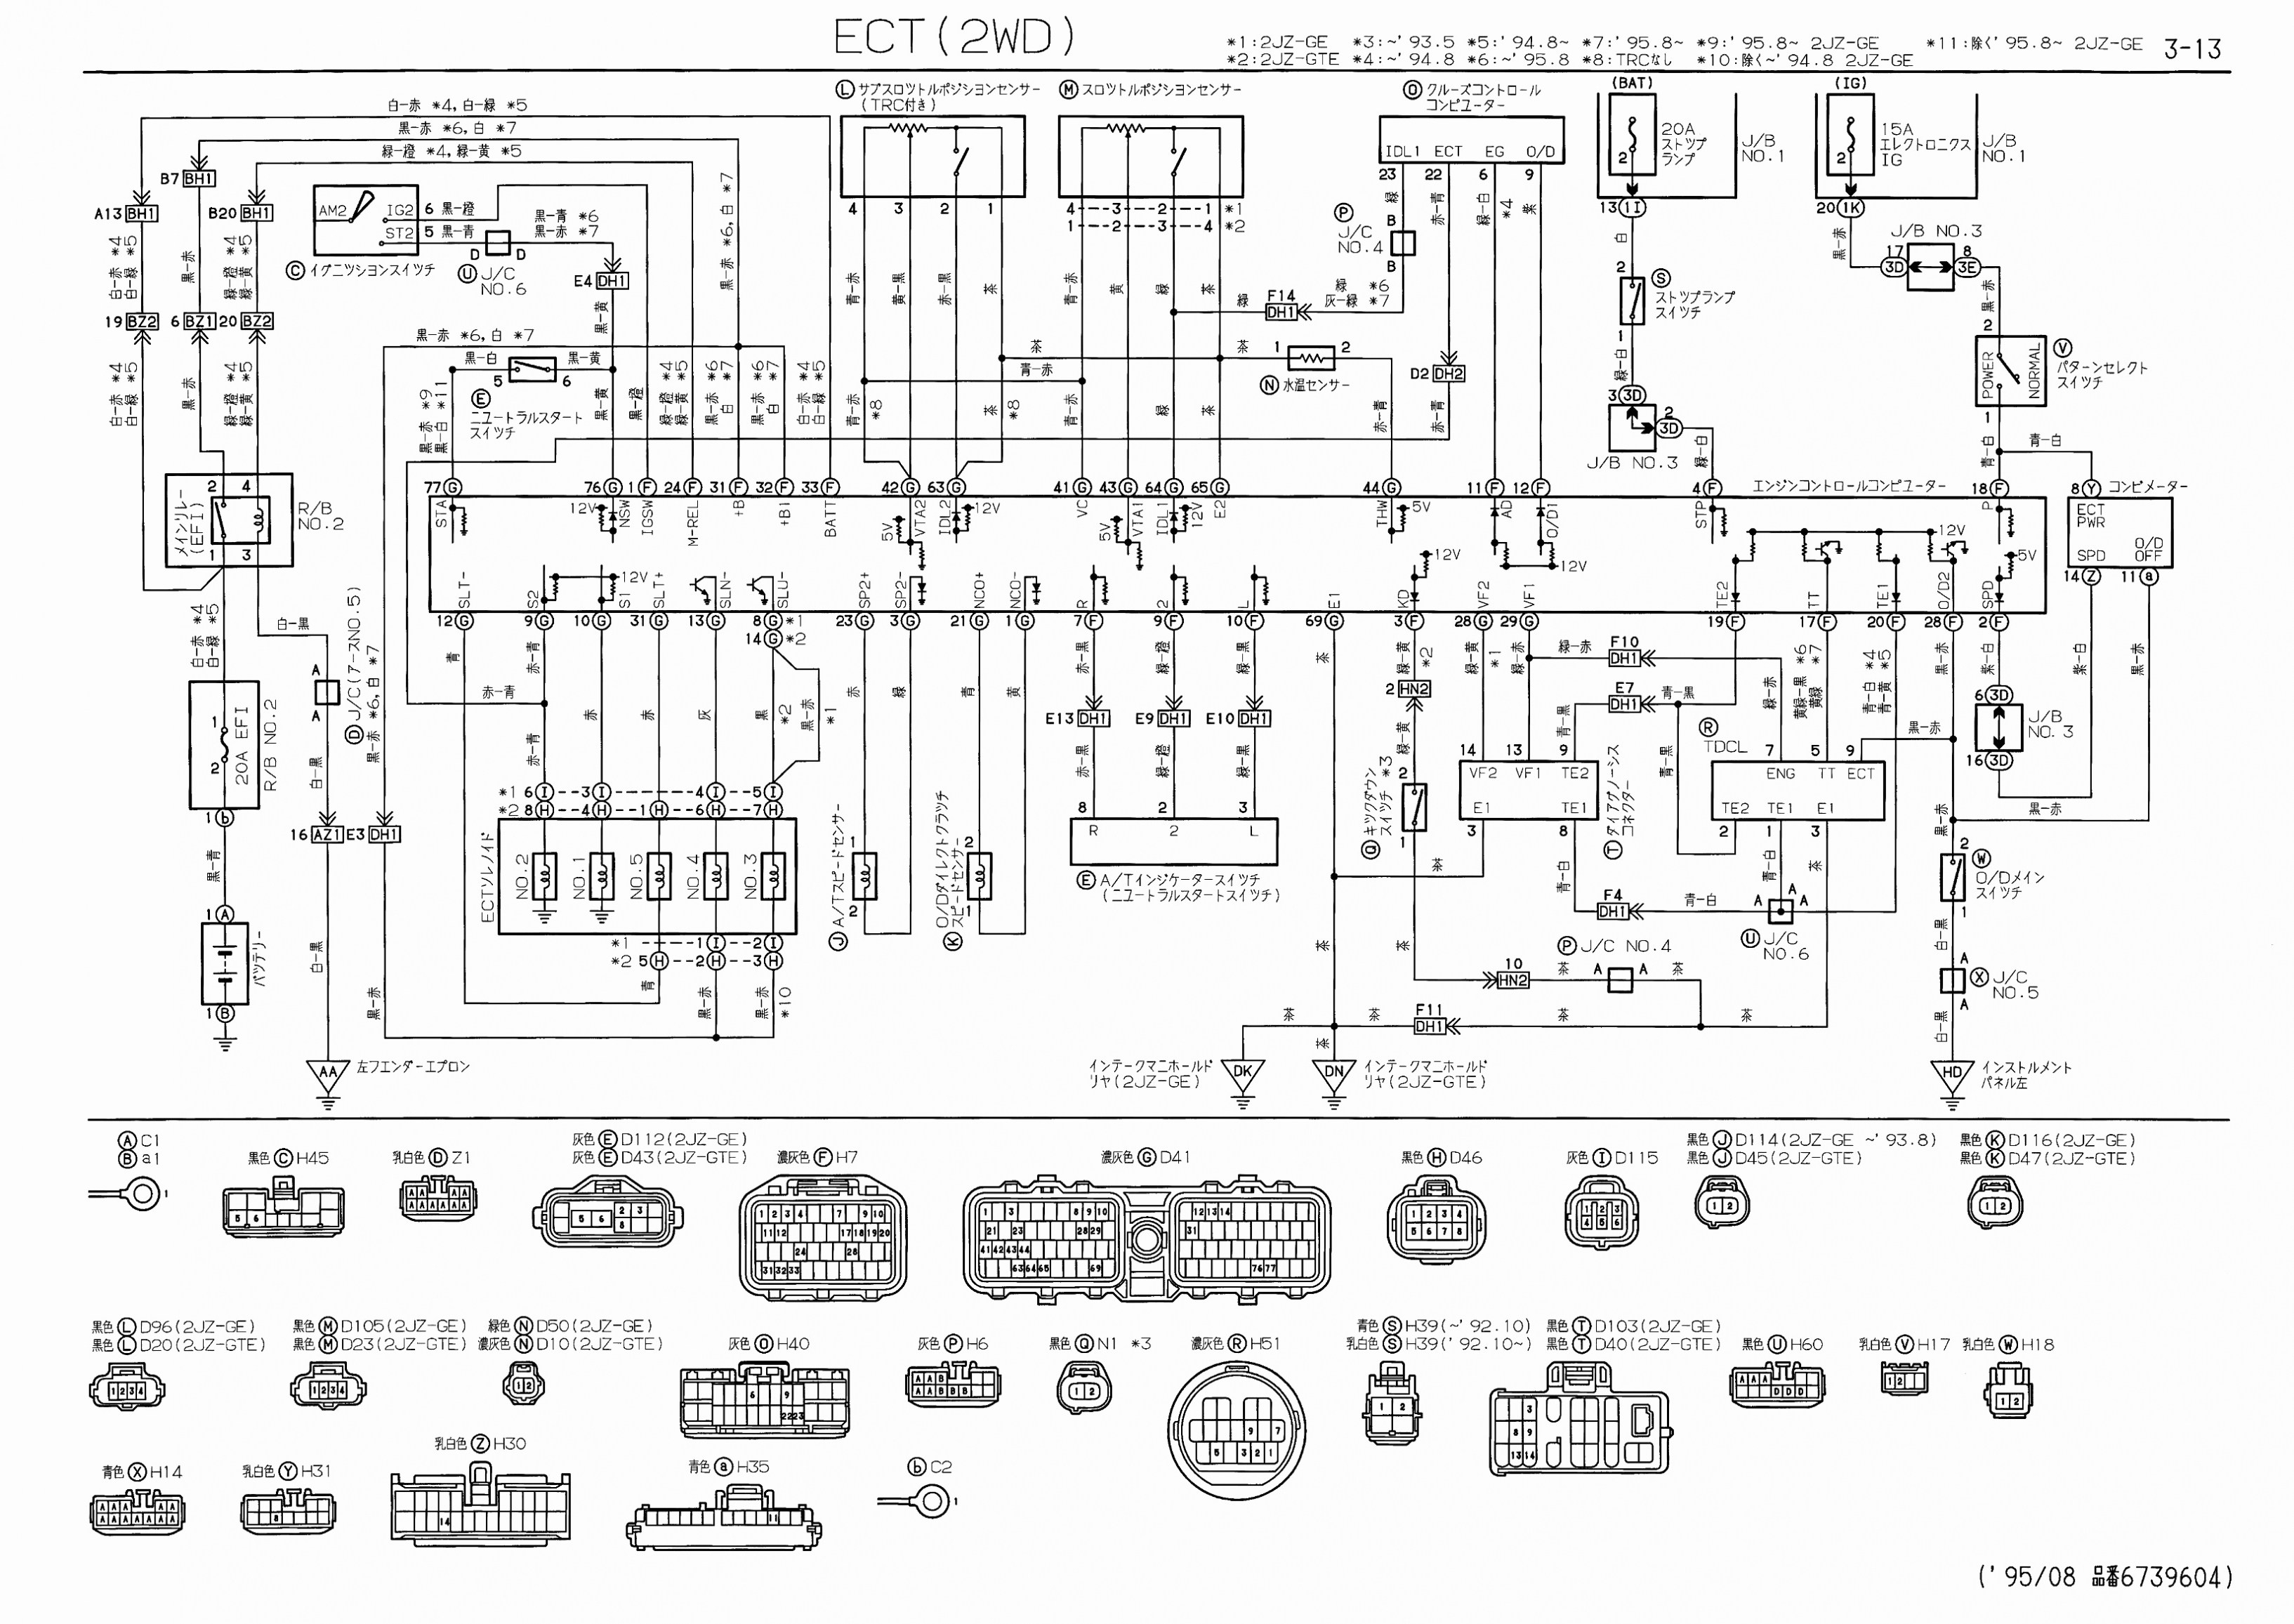 2006 Holiday Rambler Wiring Schematics | Wiring Diagram - Holiday Rambler Wiring Diagram